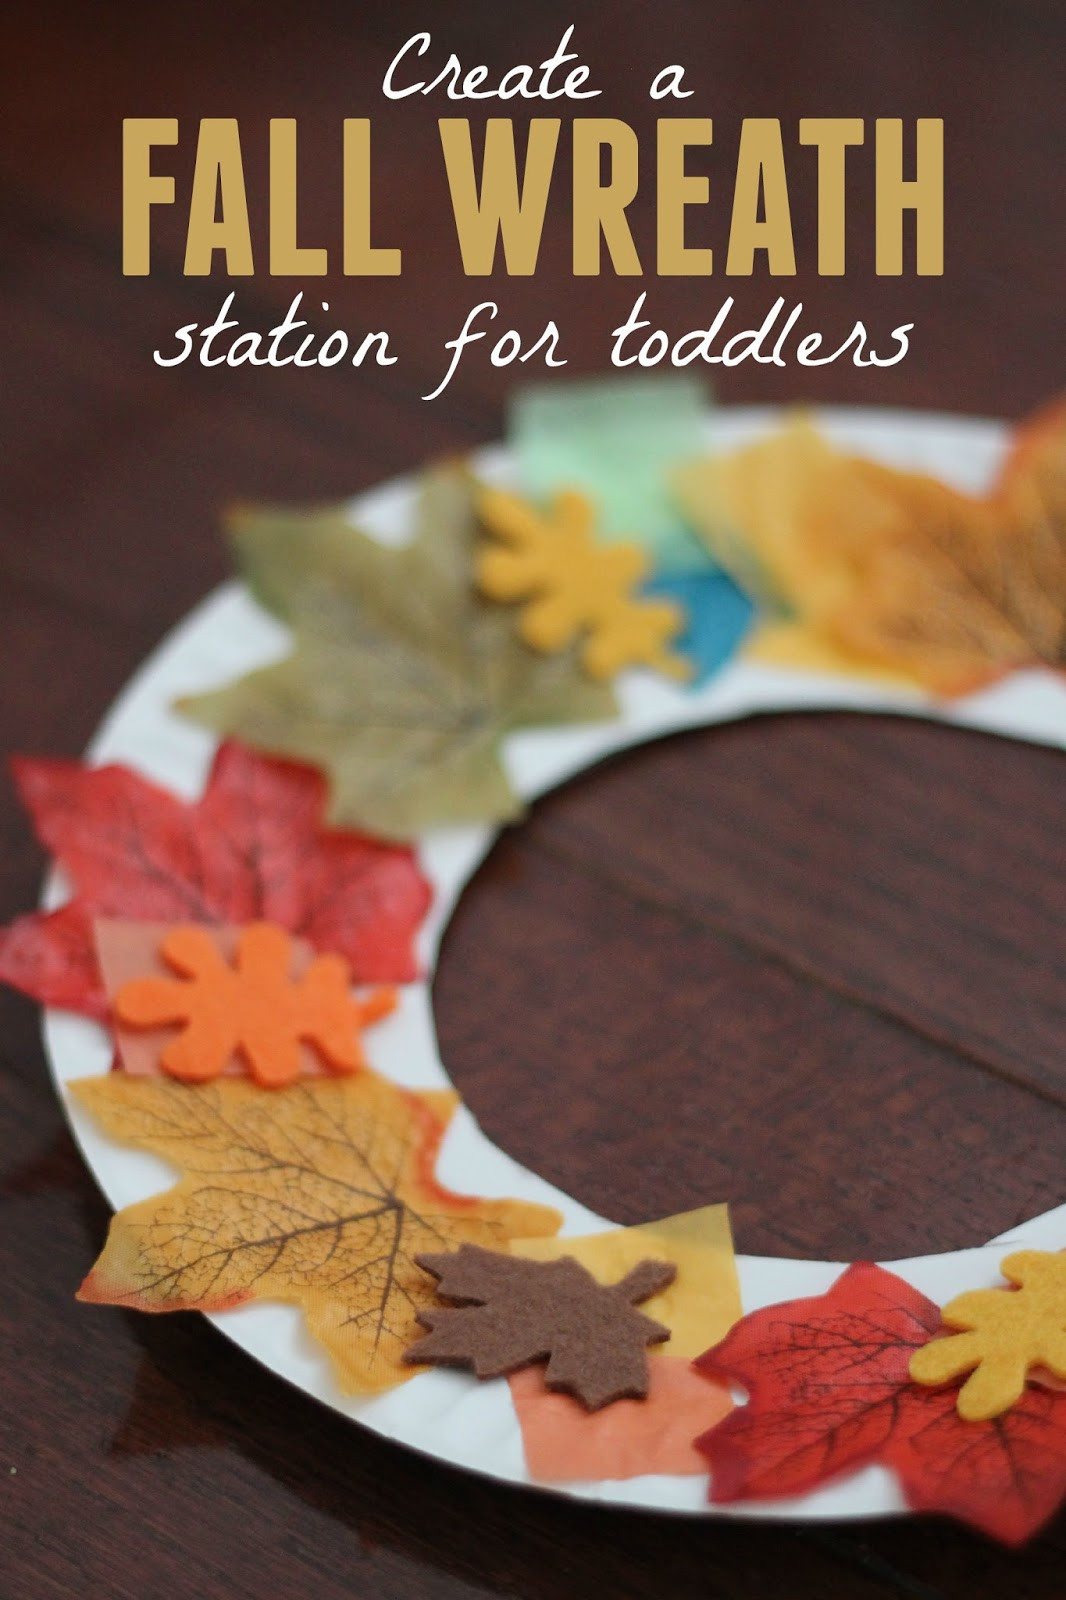 Crafts For Young Toddlers  Toddler Approved Fall Wreath Making Station for Toddlers